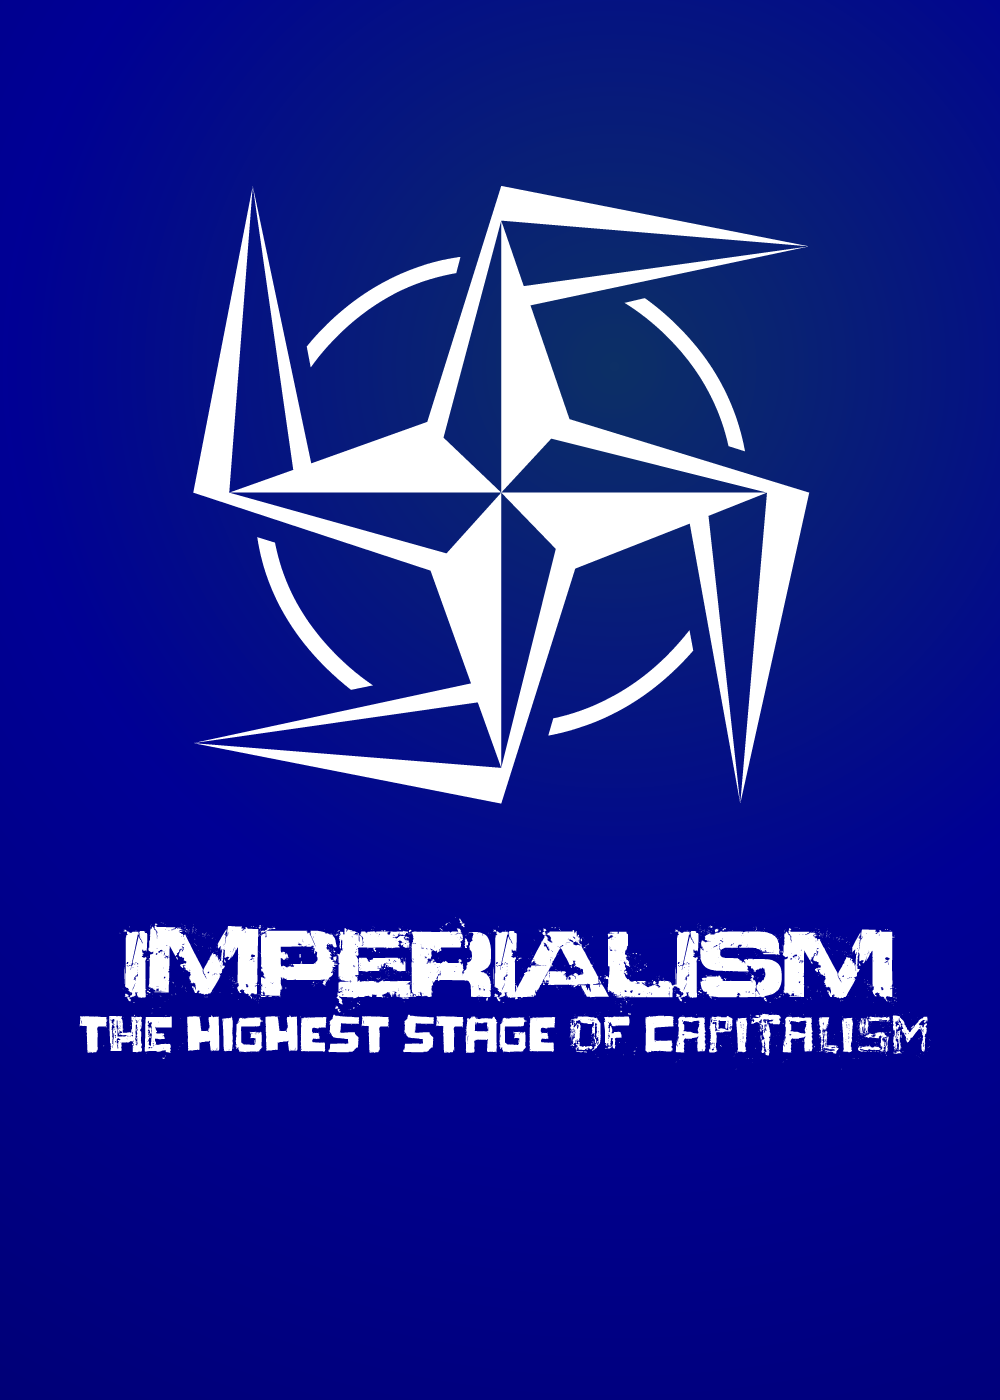 Imperialism, the Highest Stage of Capitalism - Wikipedia